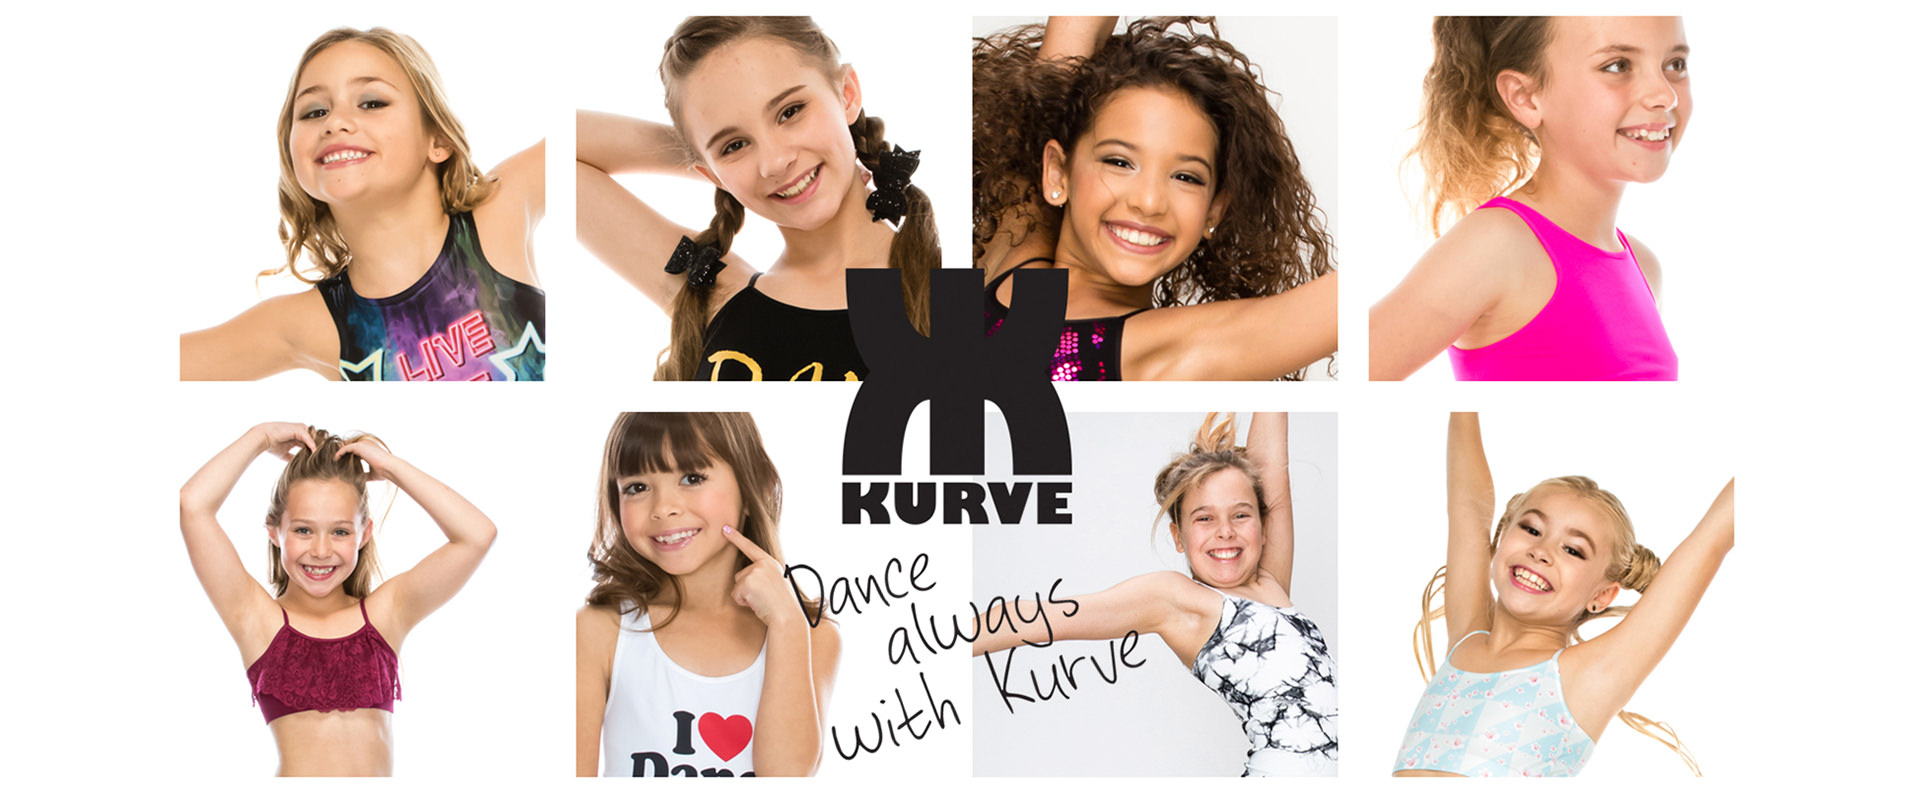 dancewear oz-distributor-wholesale-webbanner-idea-collections-kurveshop